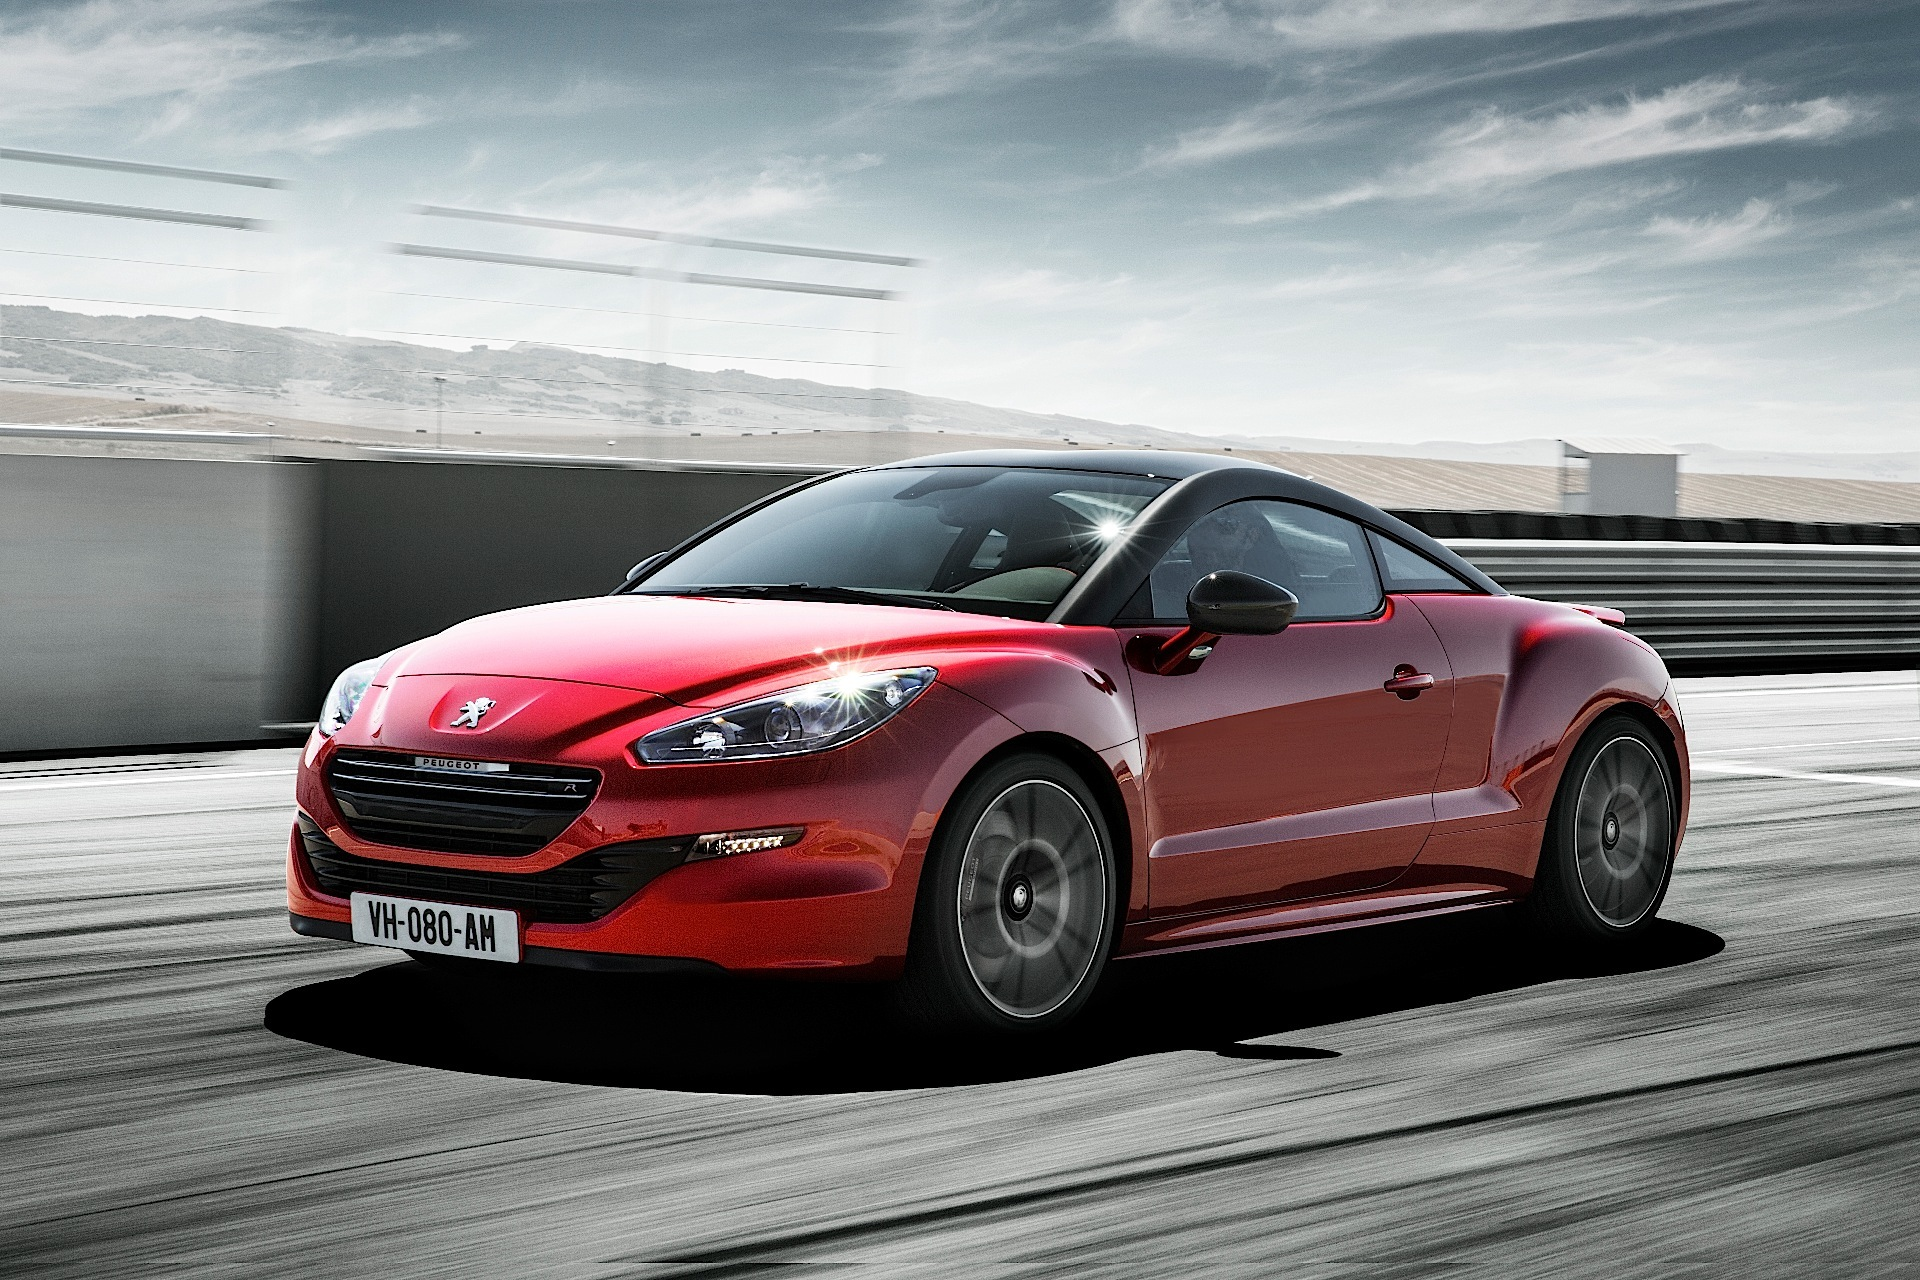 peugeot rcz r specs 2013 2014 2015 2016 2017 2018. Black Bedroom Furniture Sets. Home Design Ideas